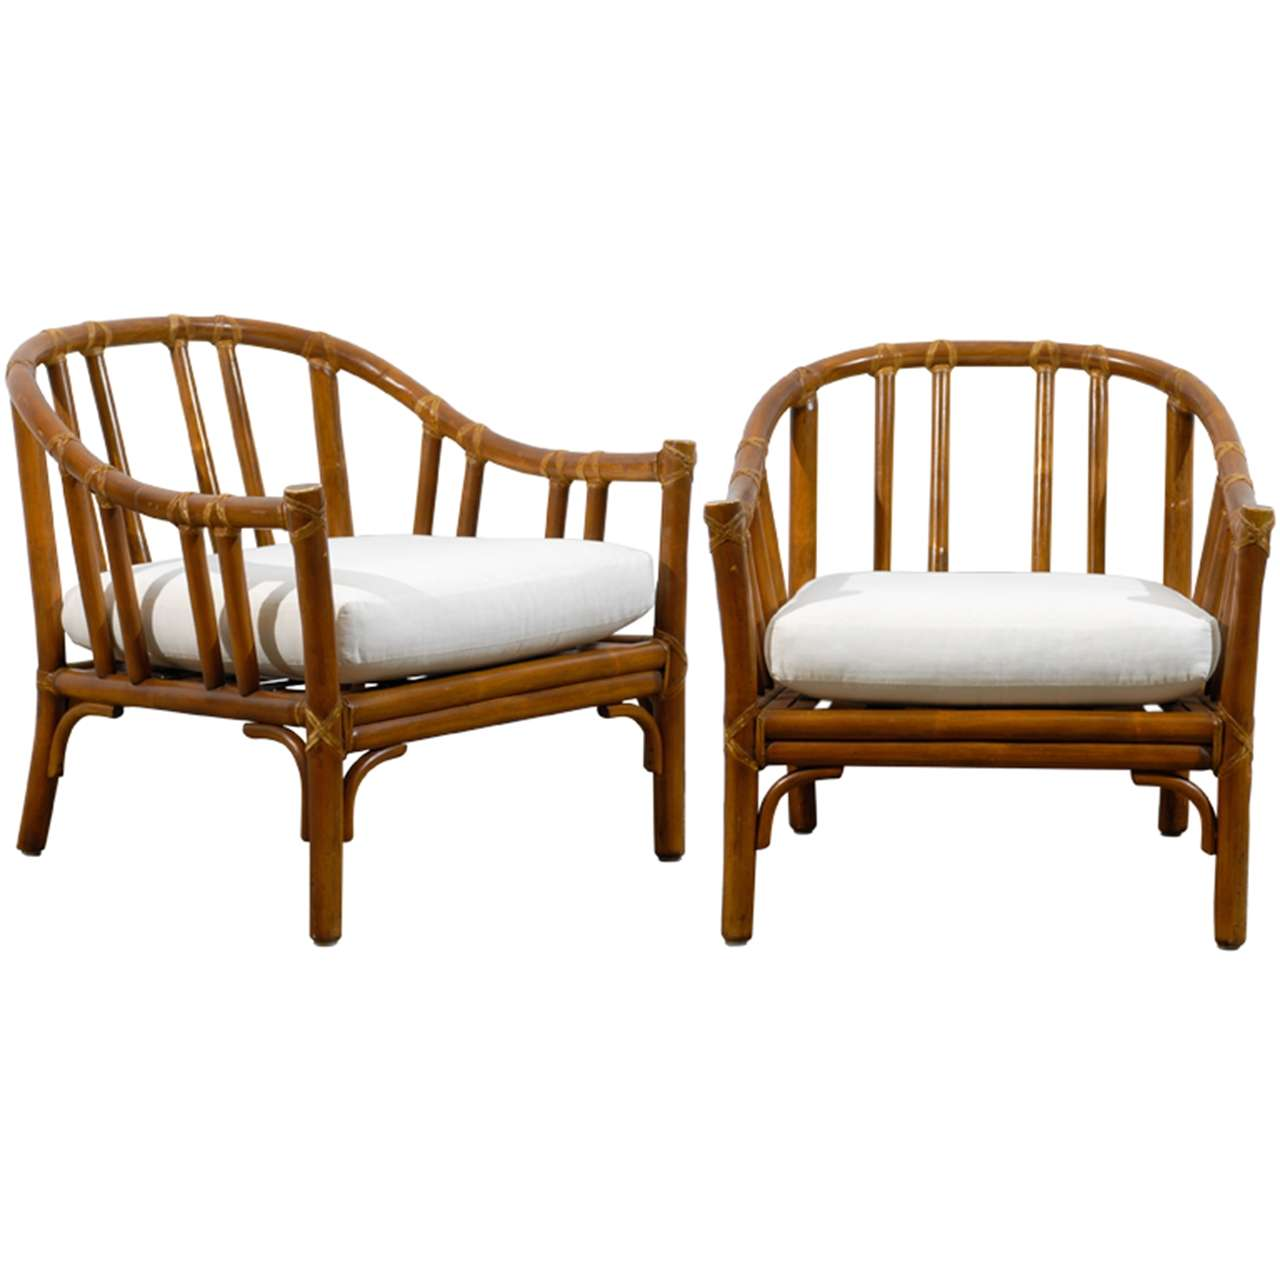 Handsome Pair Of Bamboo Lounge Club Chairs By Mcguire At 1stdibs